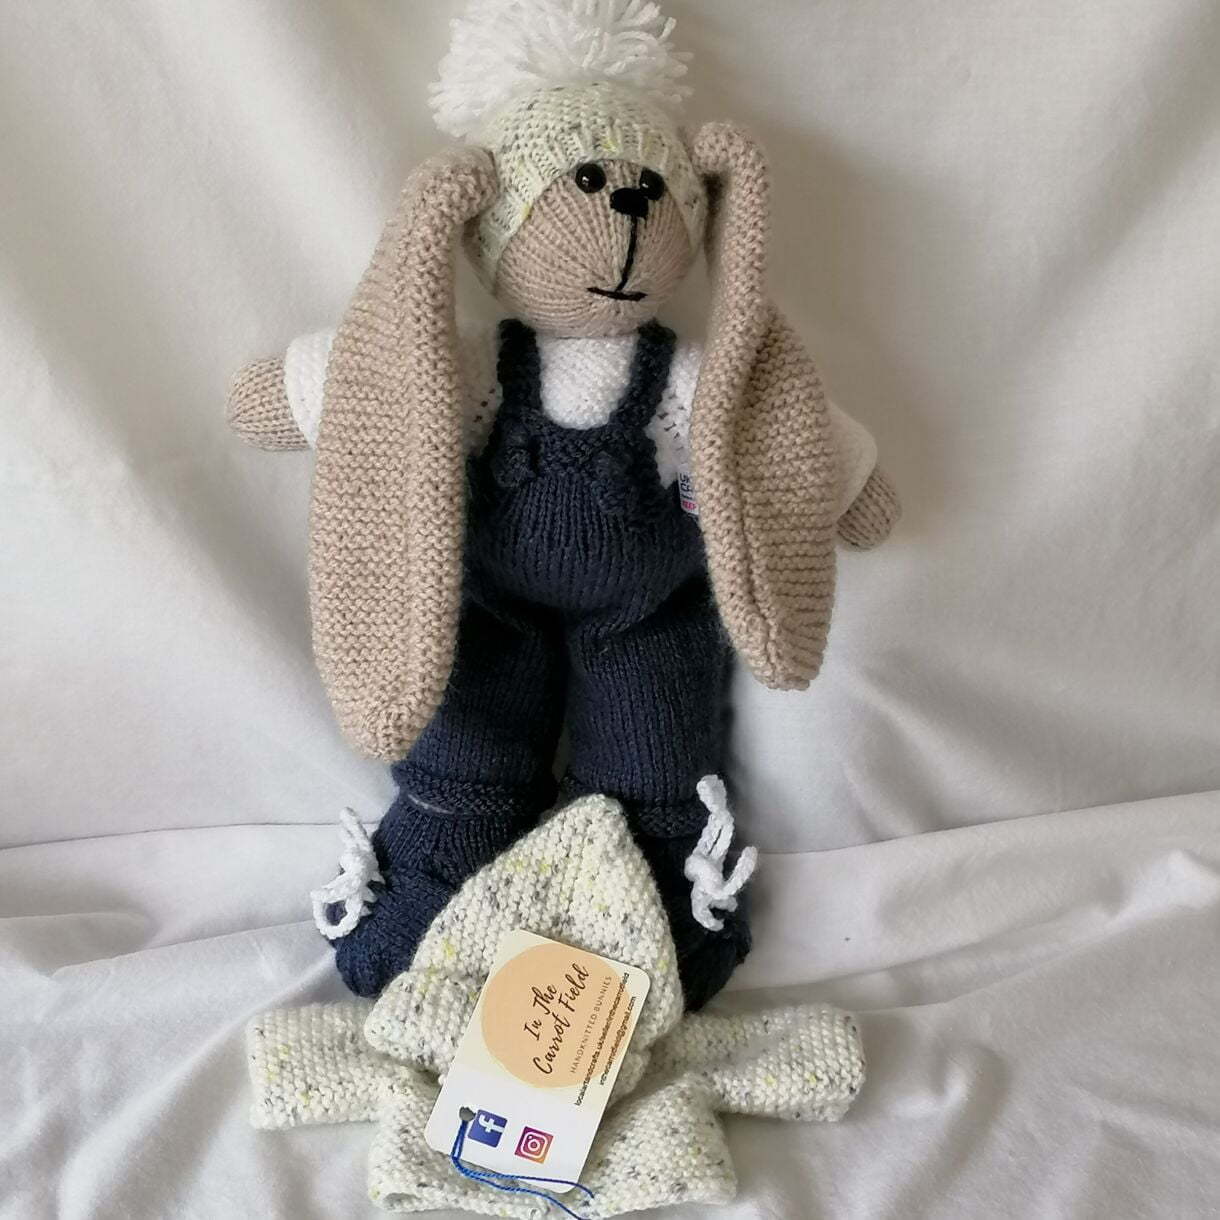 Beautifully Hand Knitted Bunny Boy in Denim Dungarees and Shoes and a Co-ordinated Hat and Hooded Jacket